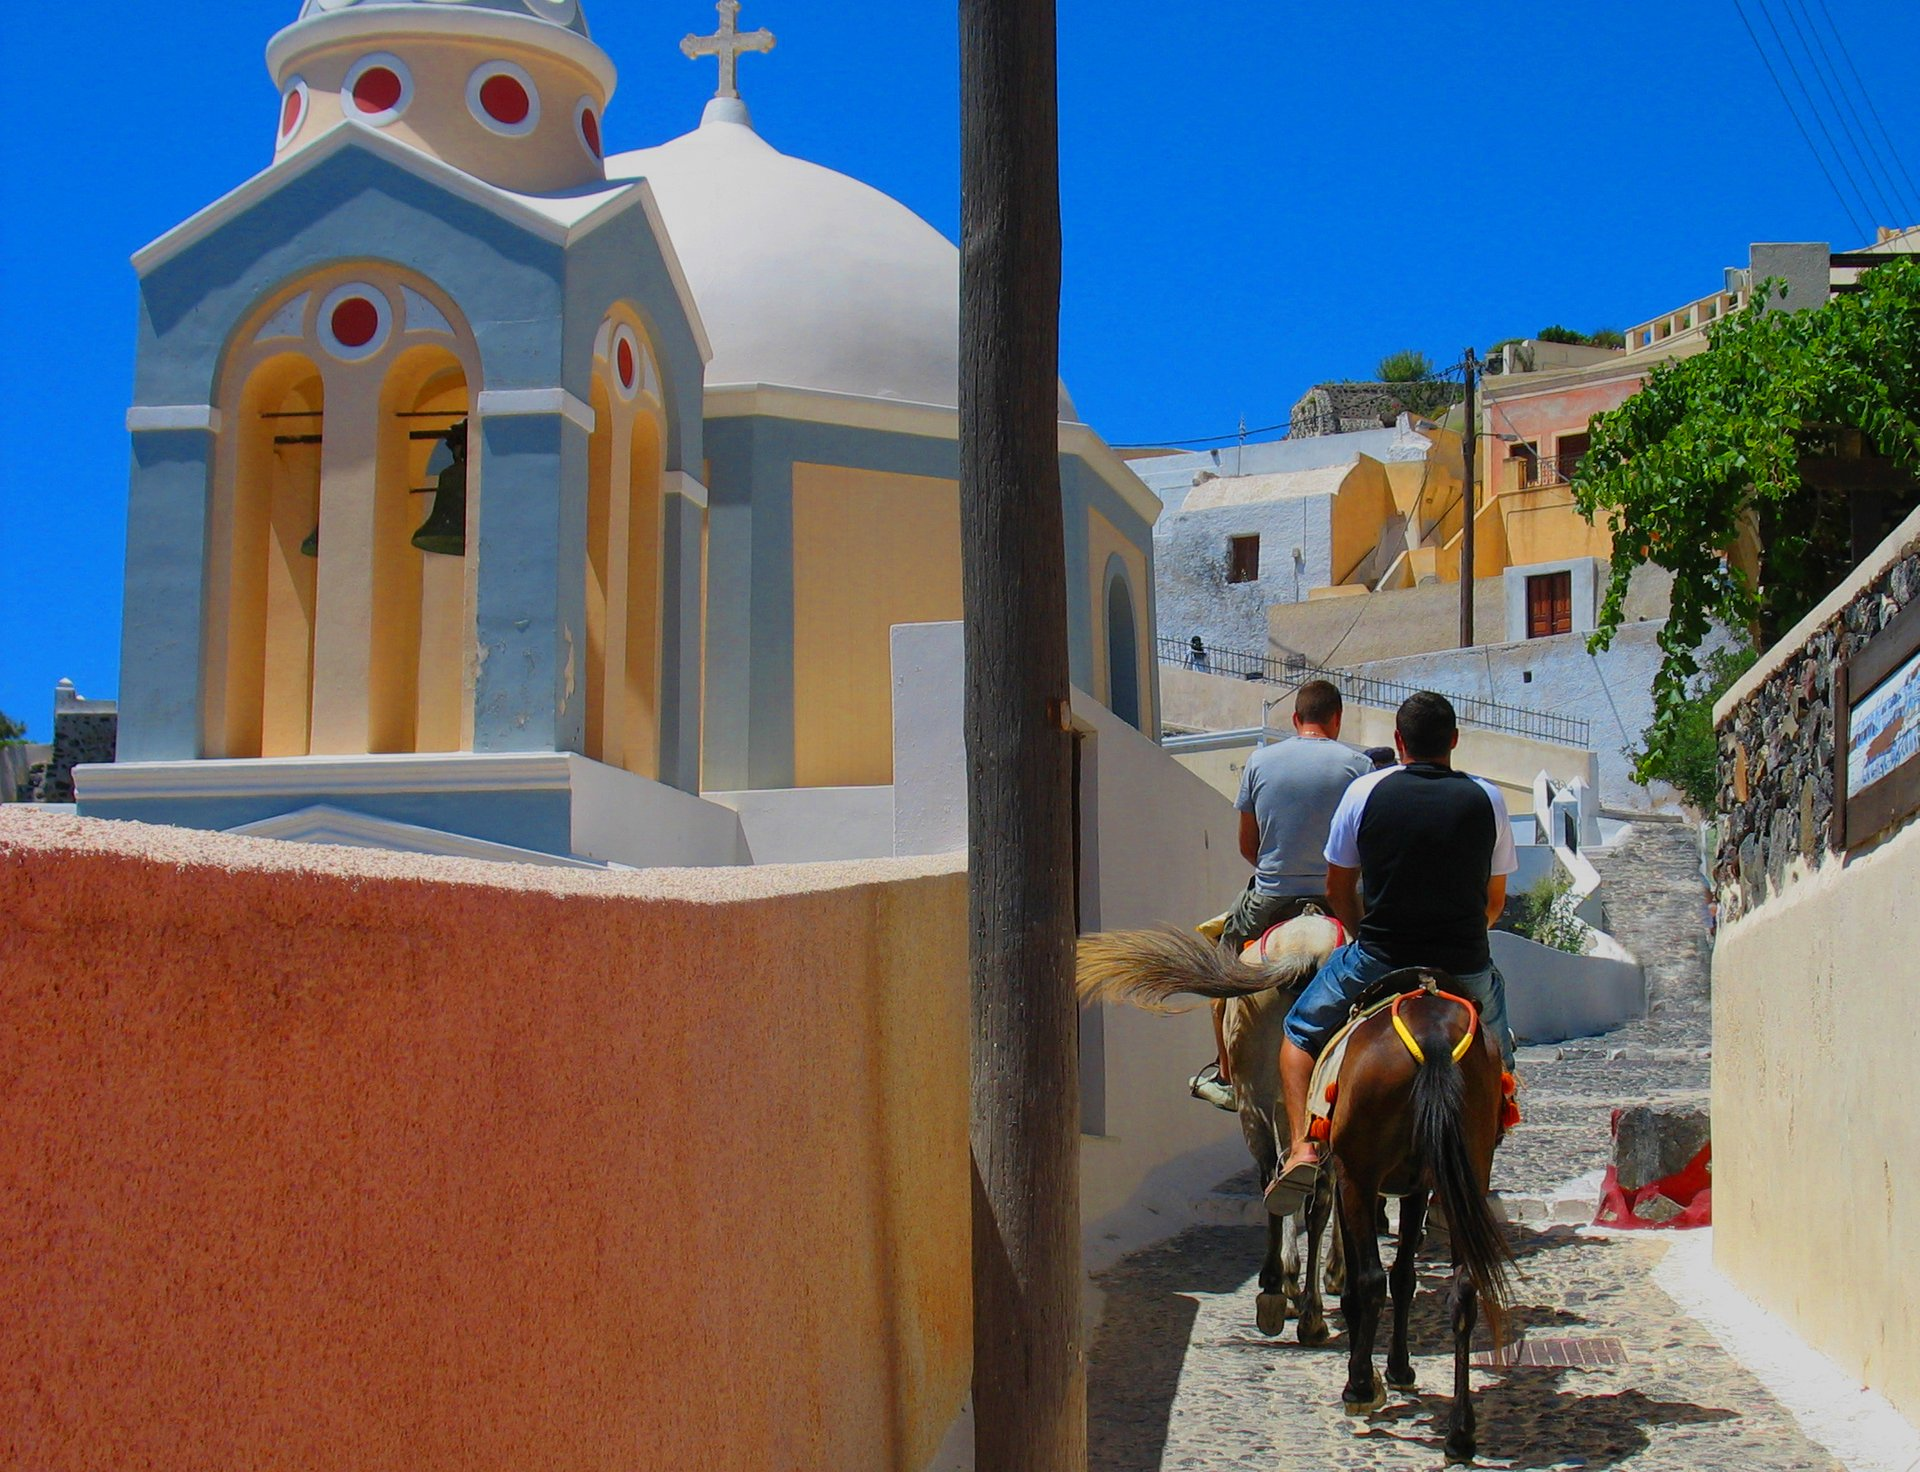 Donkey Ride in Santorini 2019 - Best Time